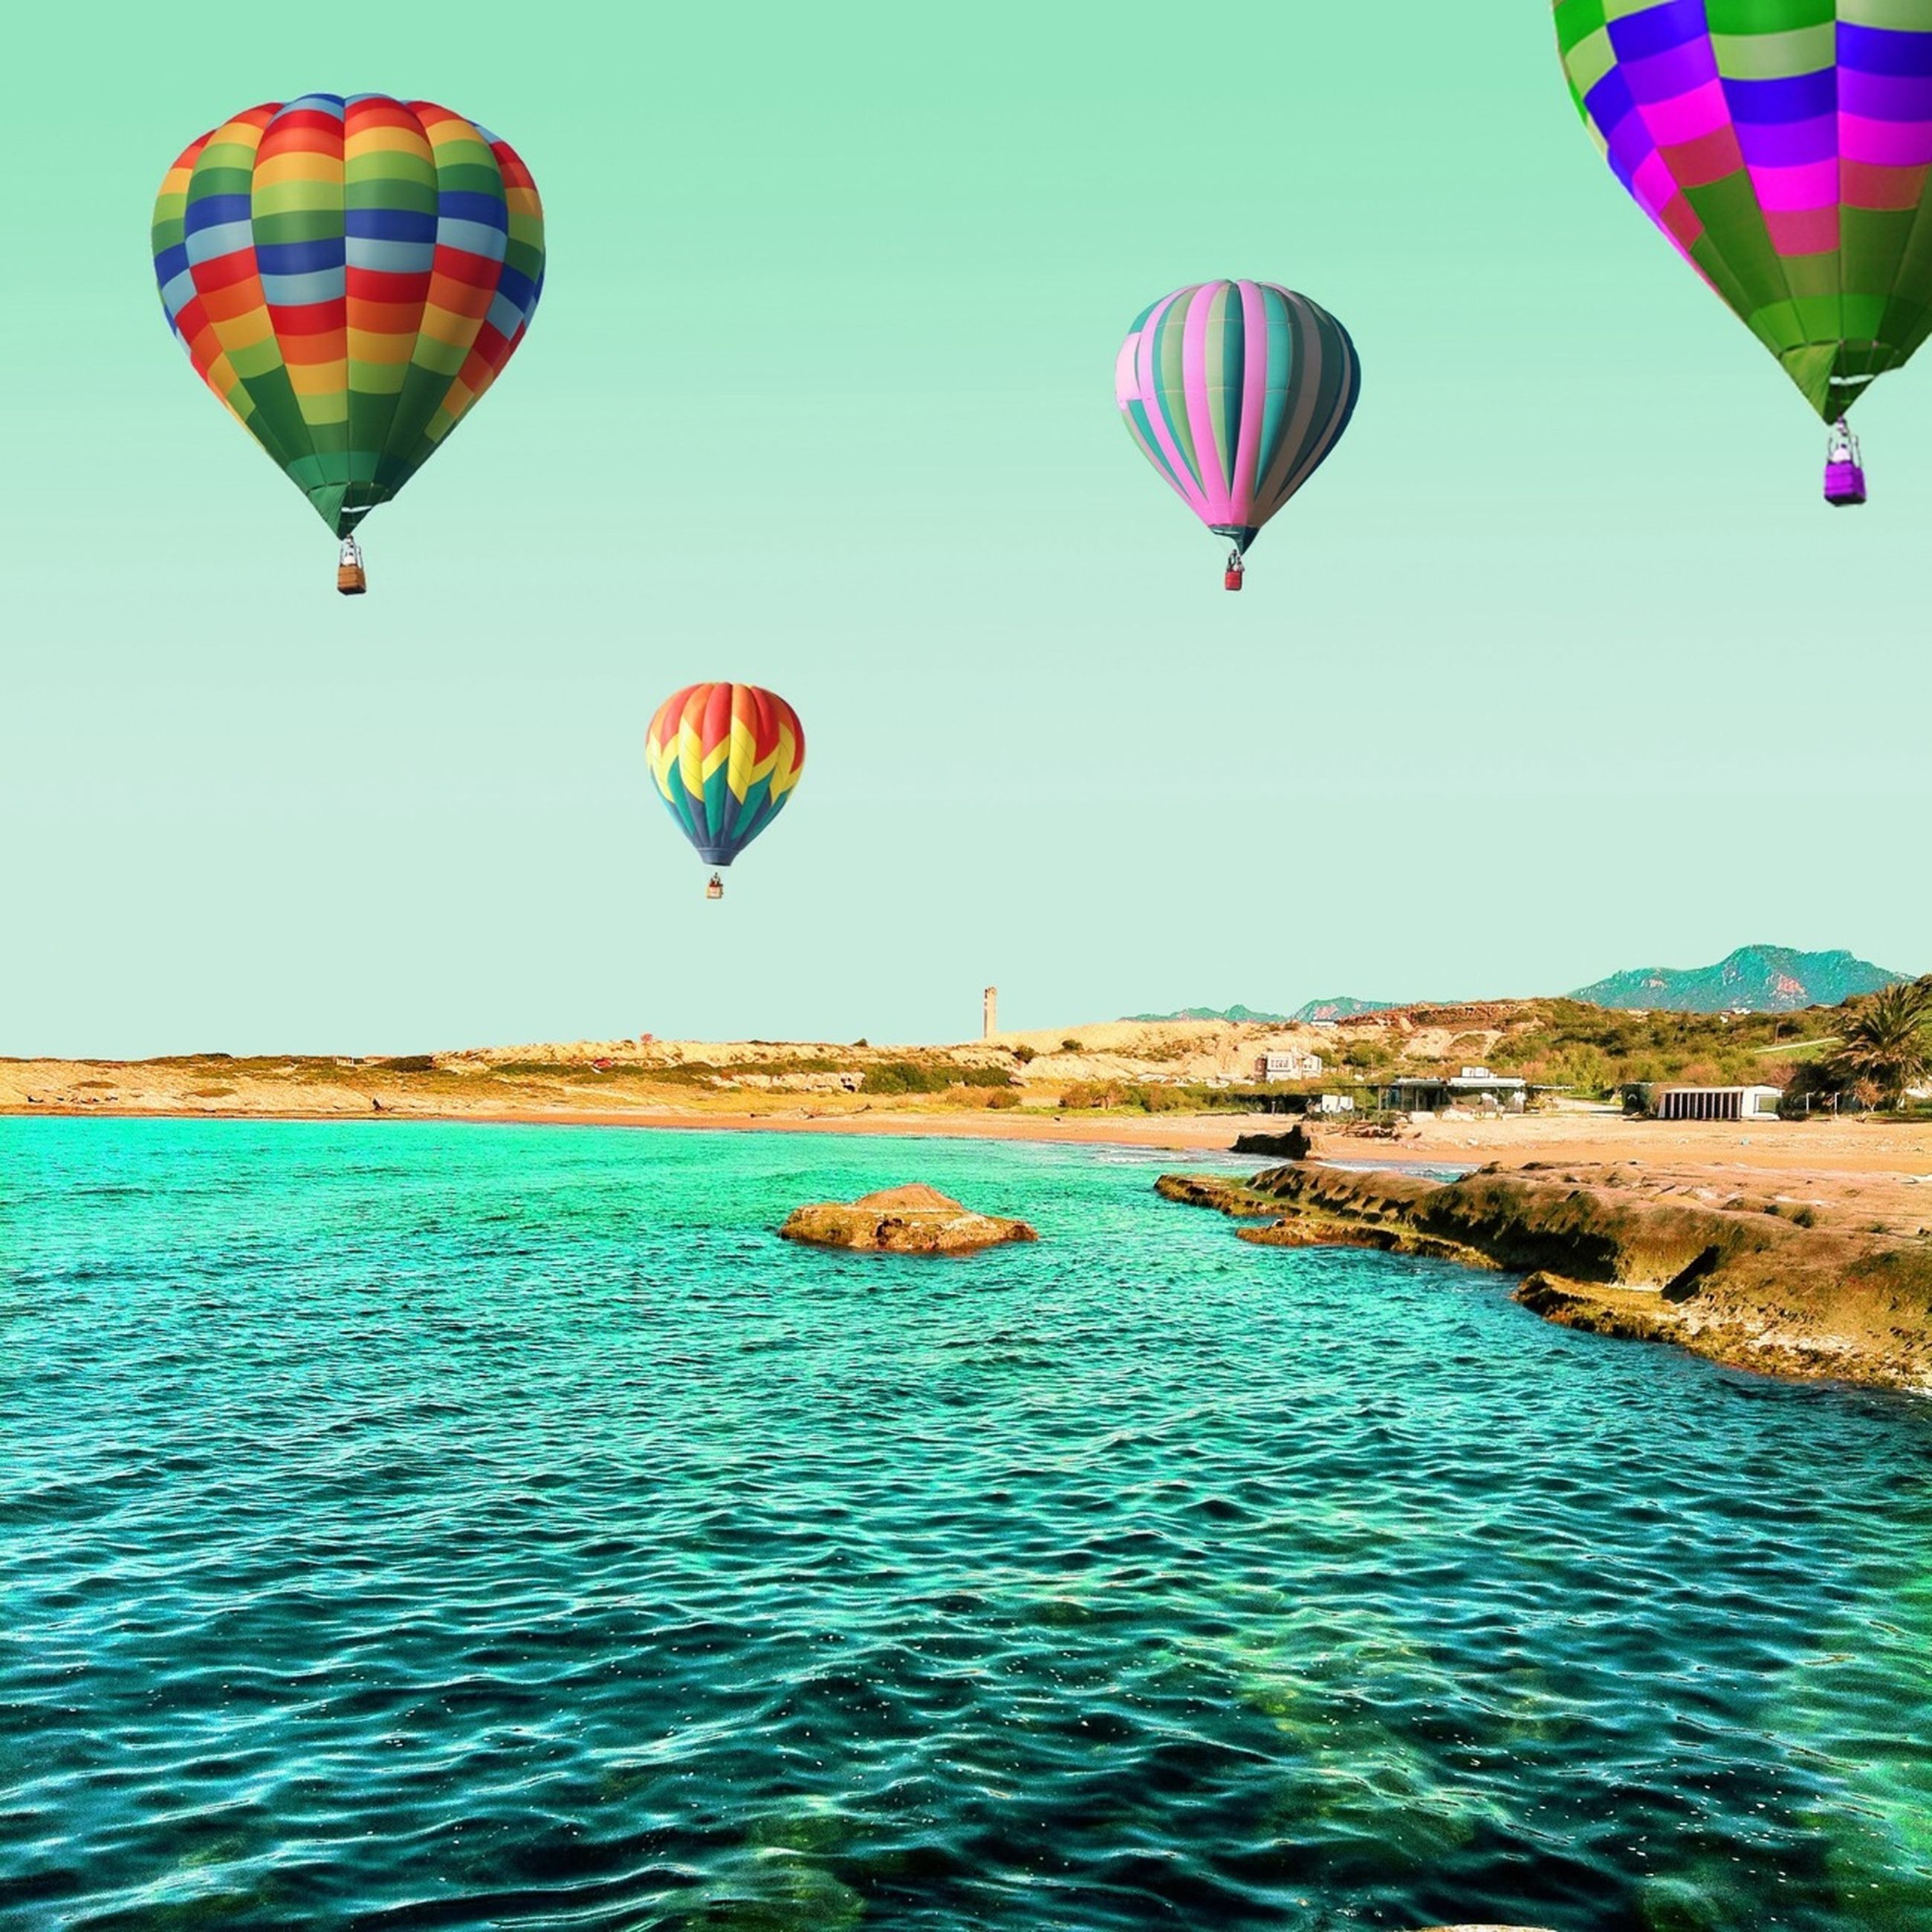 sea, water, parachute, flying, mid-air, multi colored, blue, clear sky, hot air balloon, paragliding, vacations, scenics, tranquility, leisure activity, adventure, tranquil scene, waterfront, beauty in nature, sky, fun